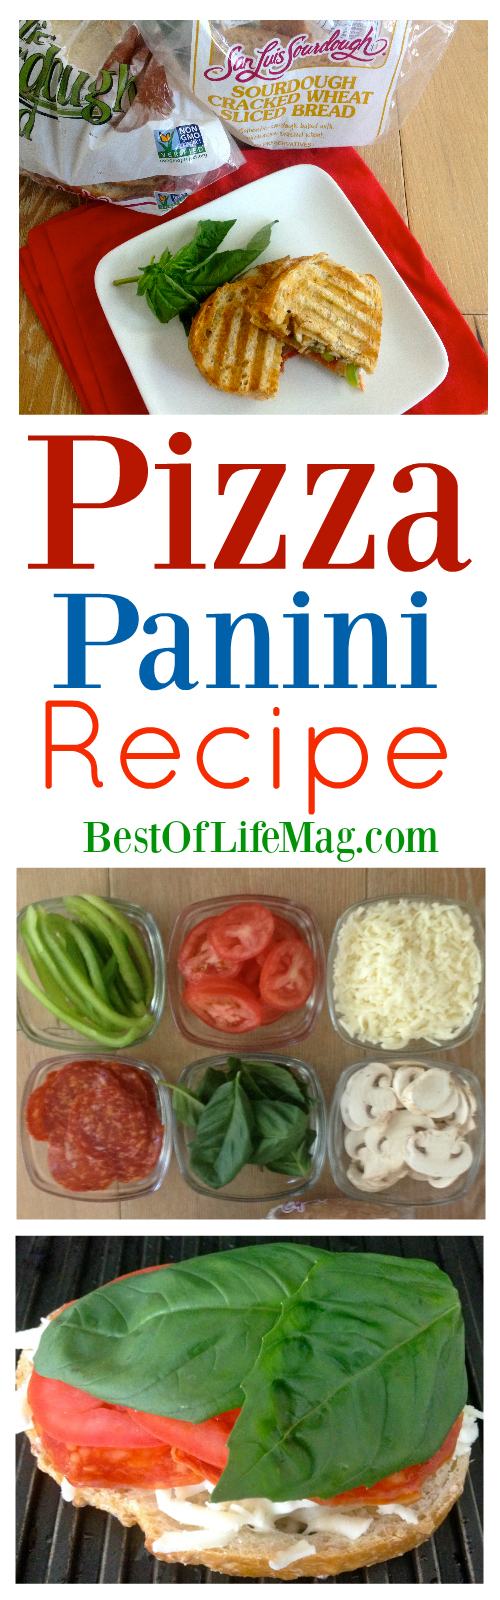 Our pizza panini recipe takes the popular pizza to a whole new level with fresh ingredients that everyone will love and it compliments weekly meal planning!